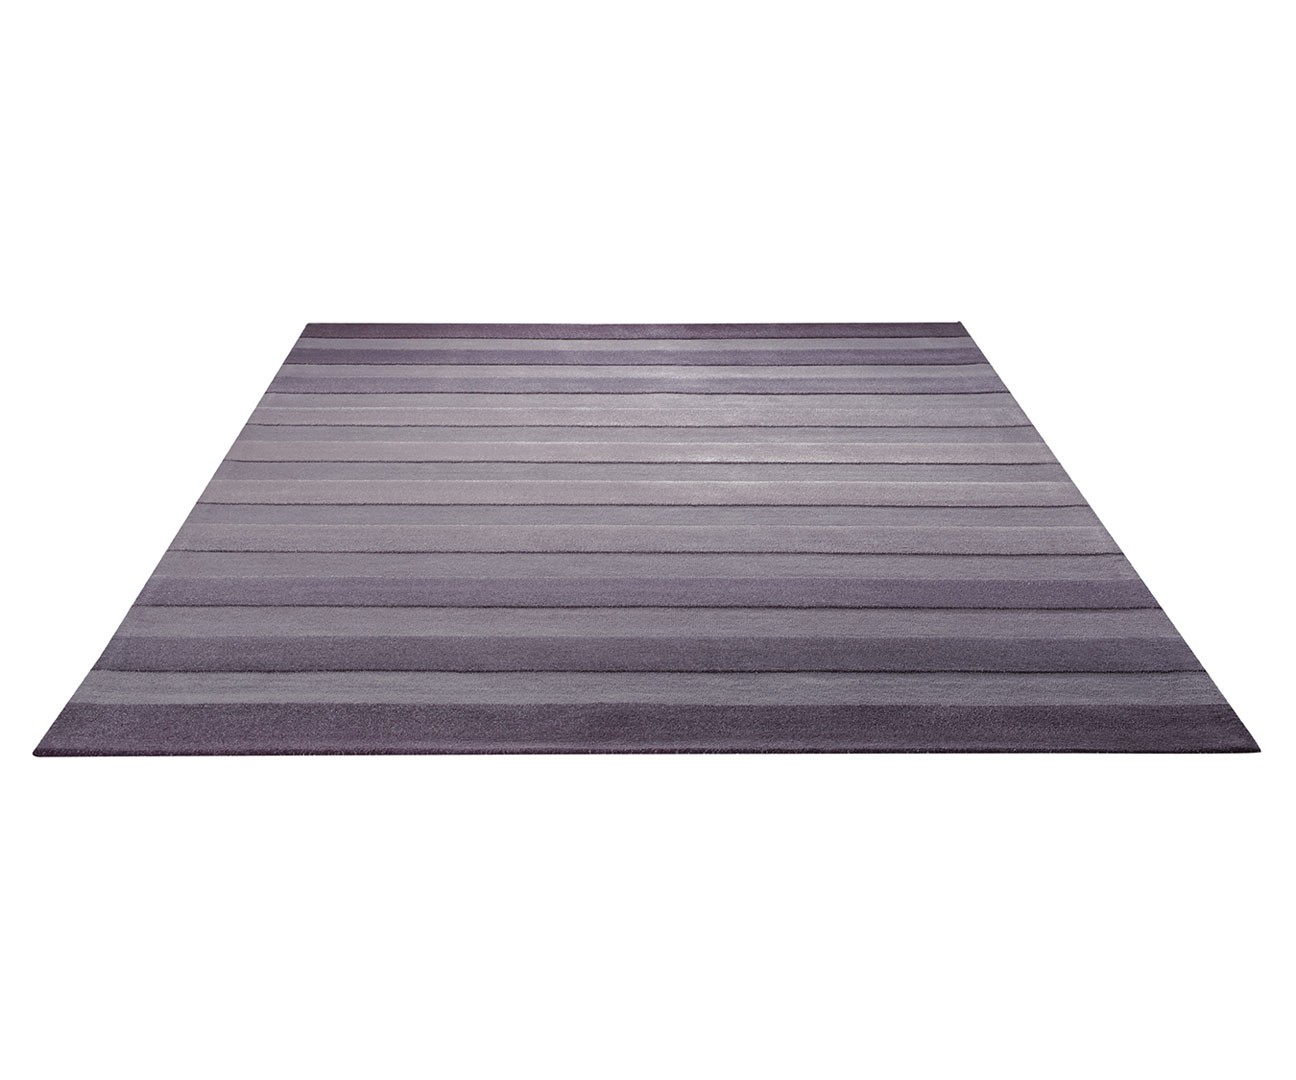 tapis gris et violet stunning exemple de grand tapis veil matelass patchwork rose gris plaid. Black Bedroom Furniture Sets. Home Design Ideas